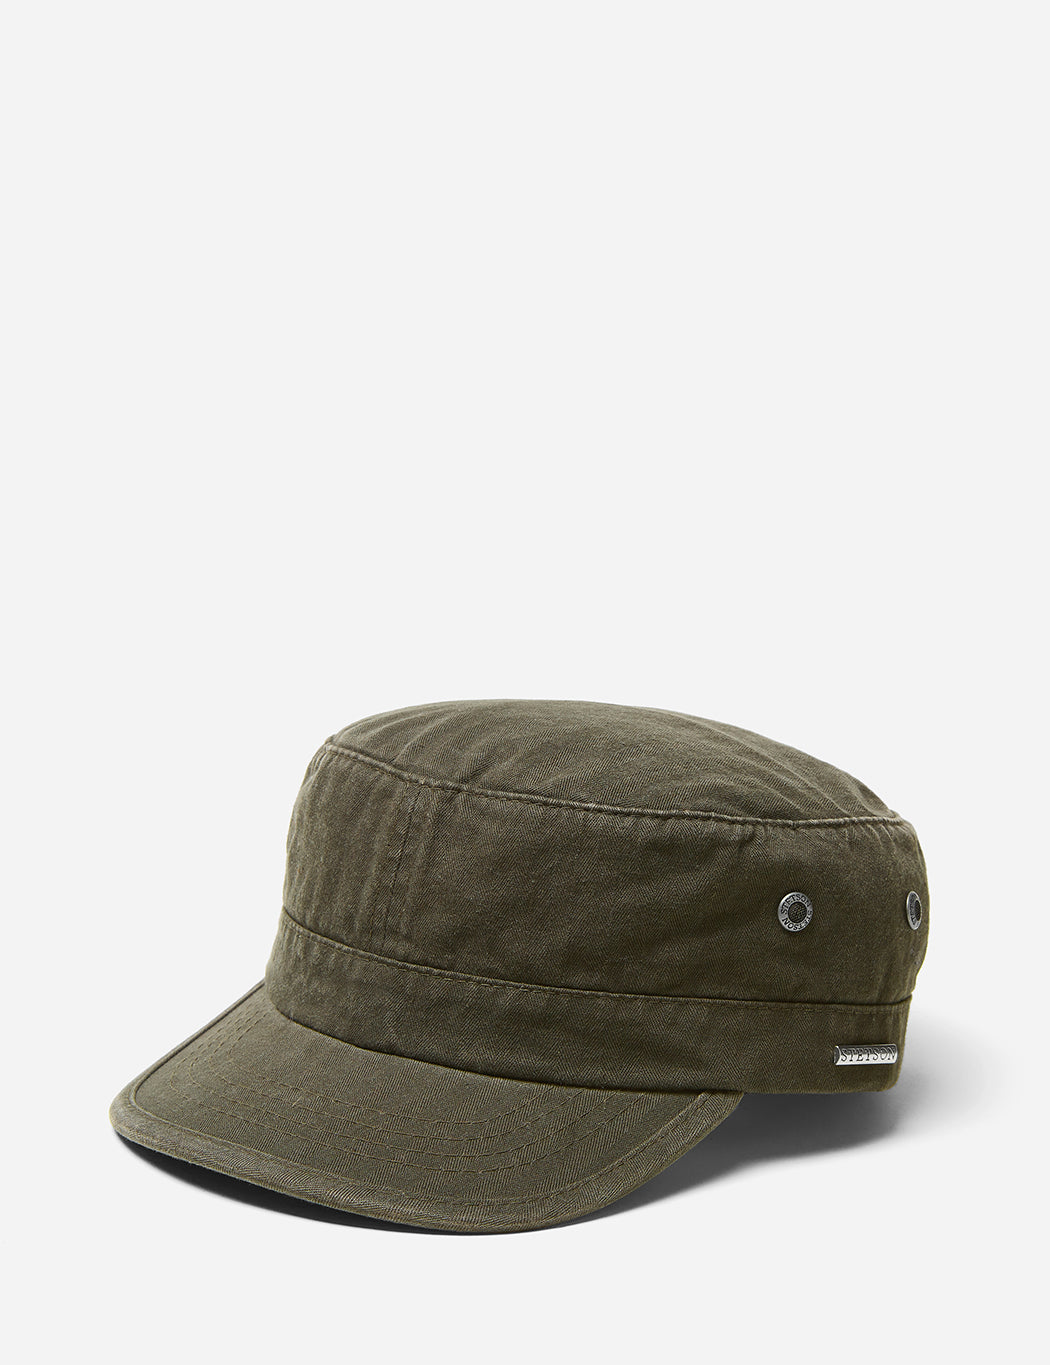 Stetson Army Cap (Cotton) - Washed Olive ... e4a6fc59d8c